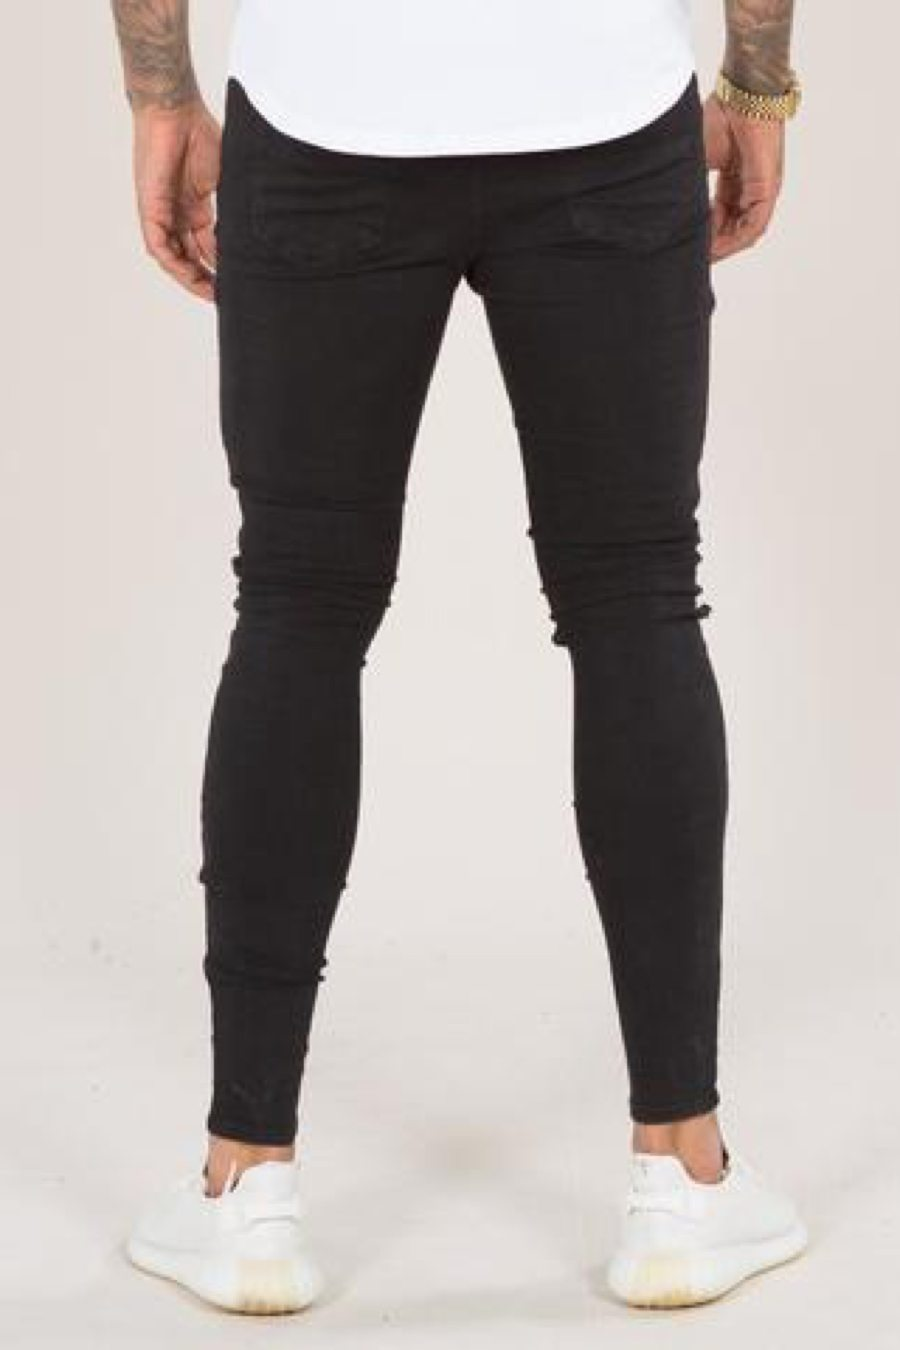 Emulate Mirano Spray on Ripped Skinny Jeans - Black - 2